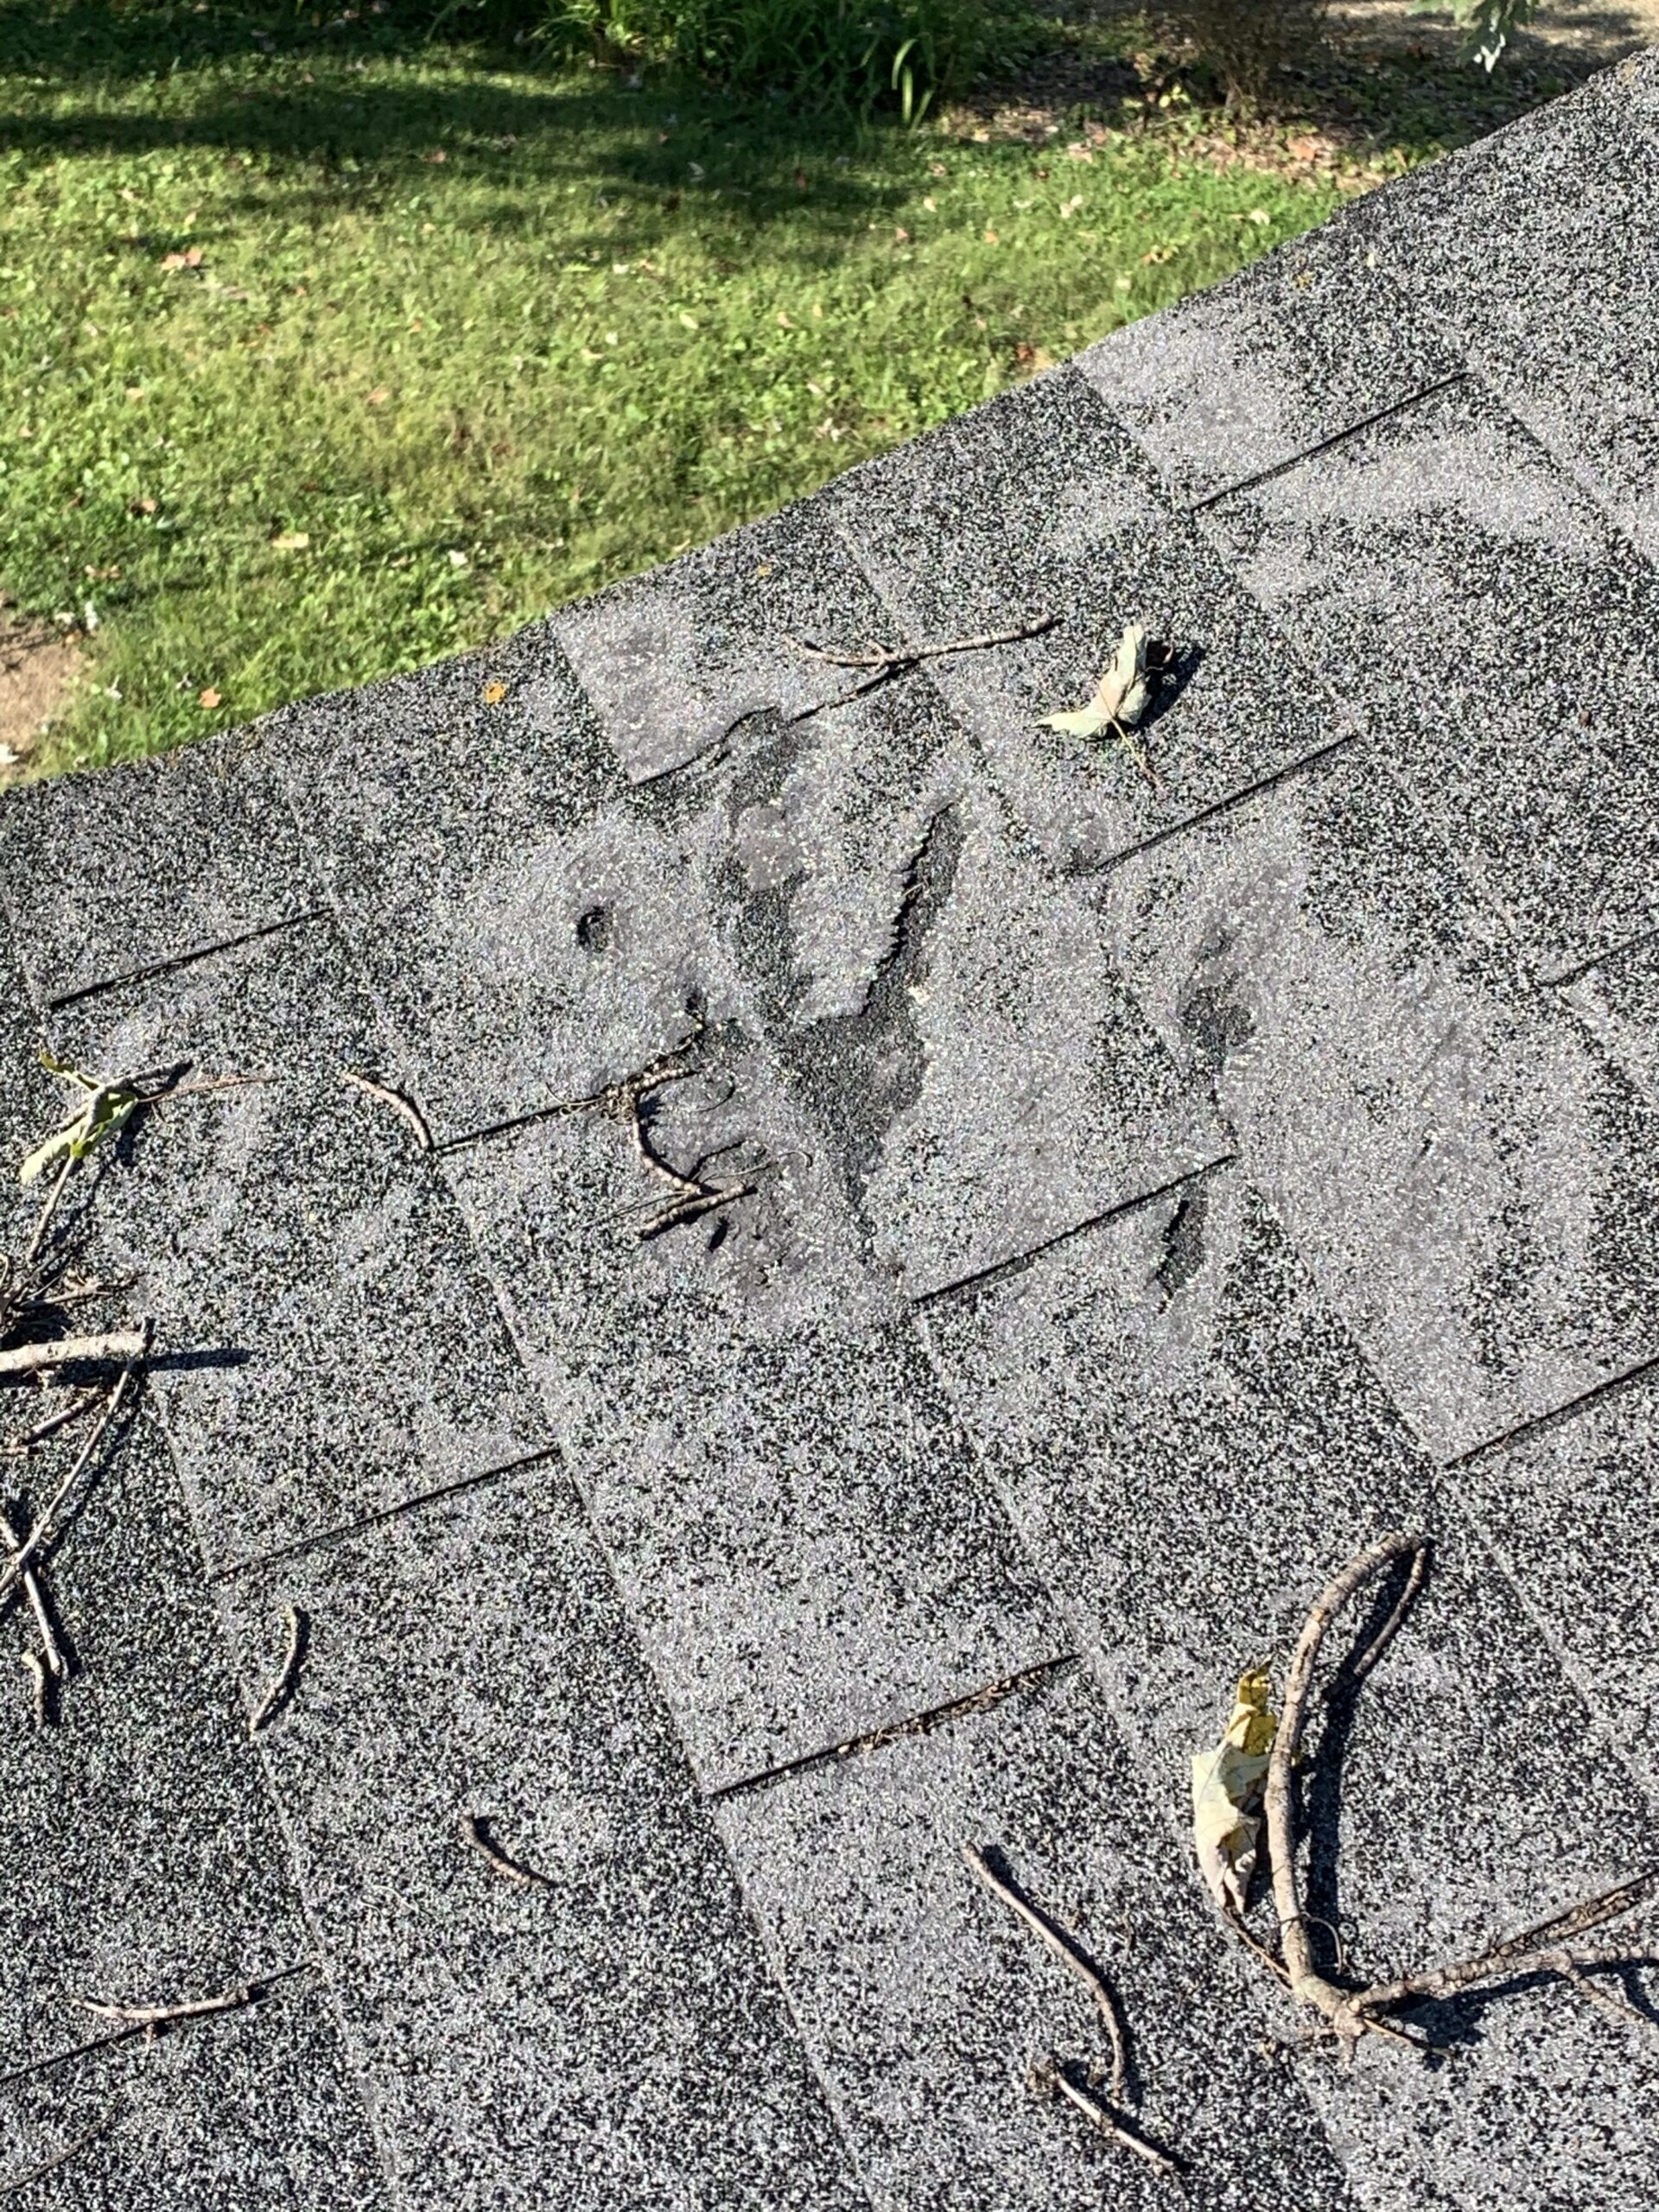 Damaged shingles on residential home